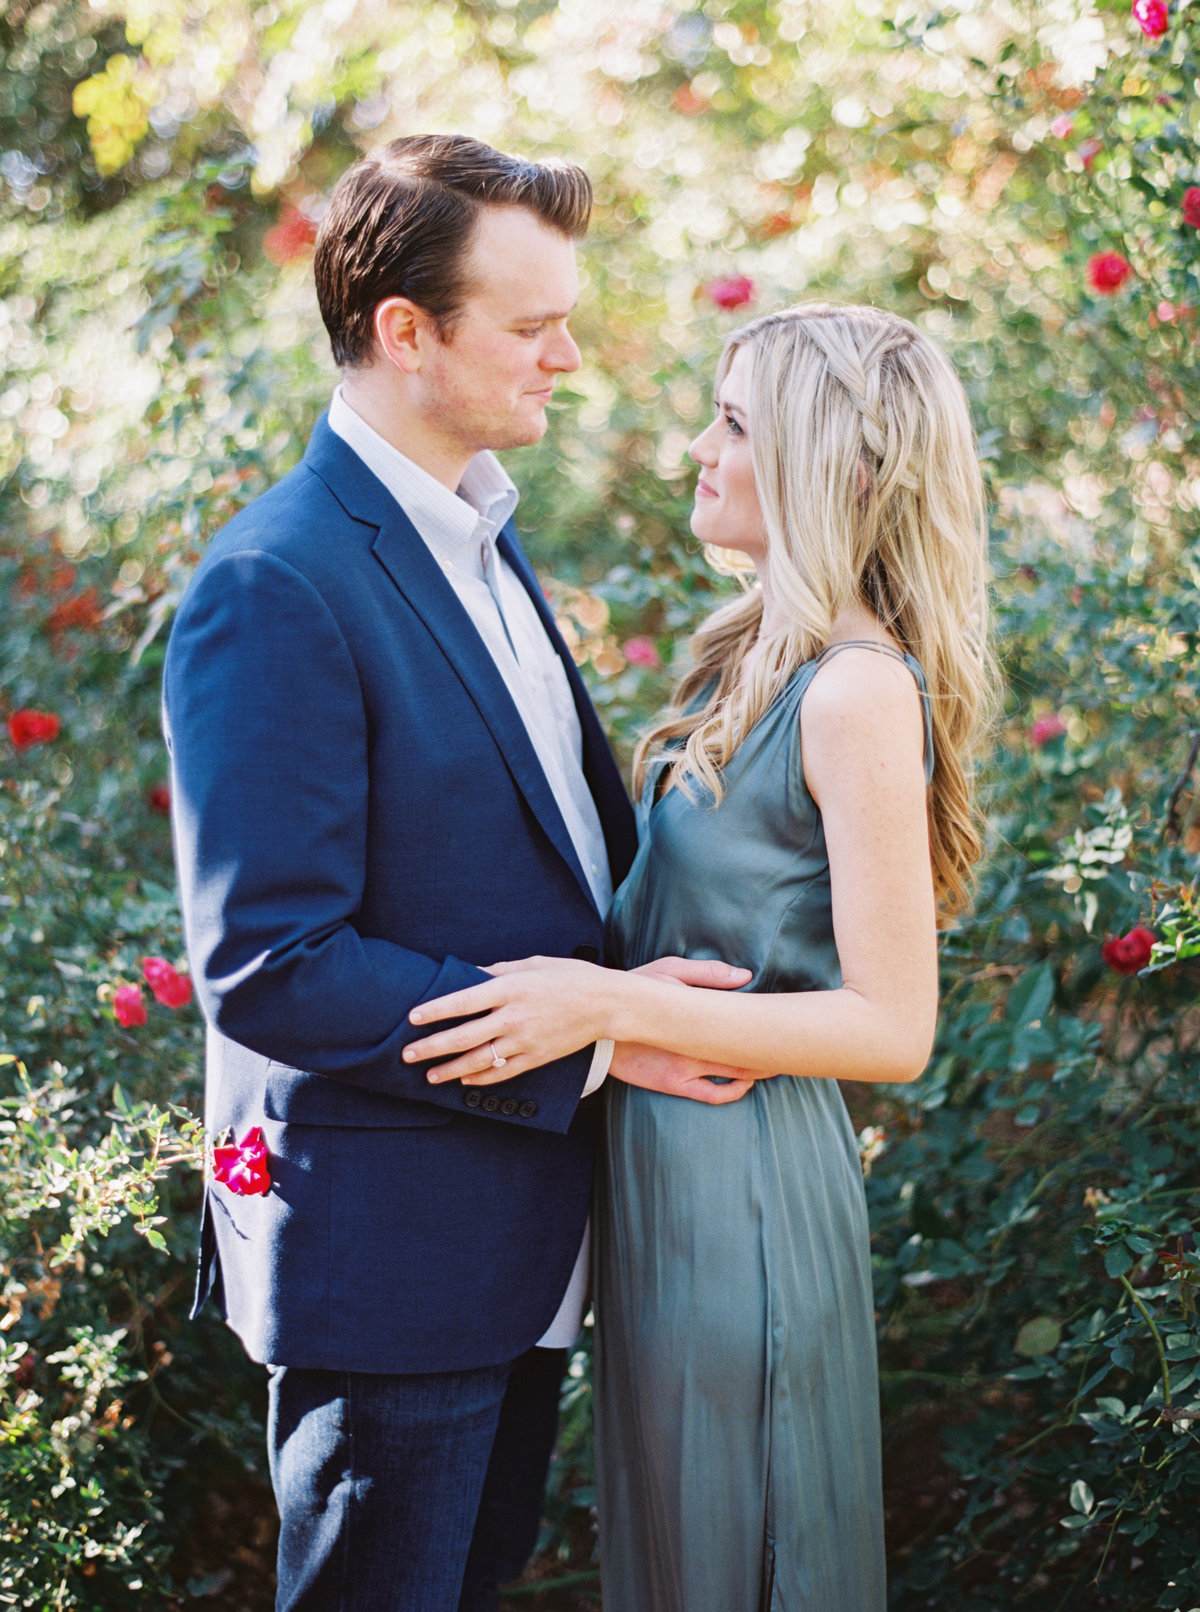 Phoenix Arizona Engagement Session - Mary Claire Photography-26